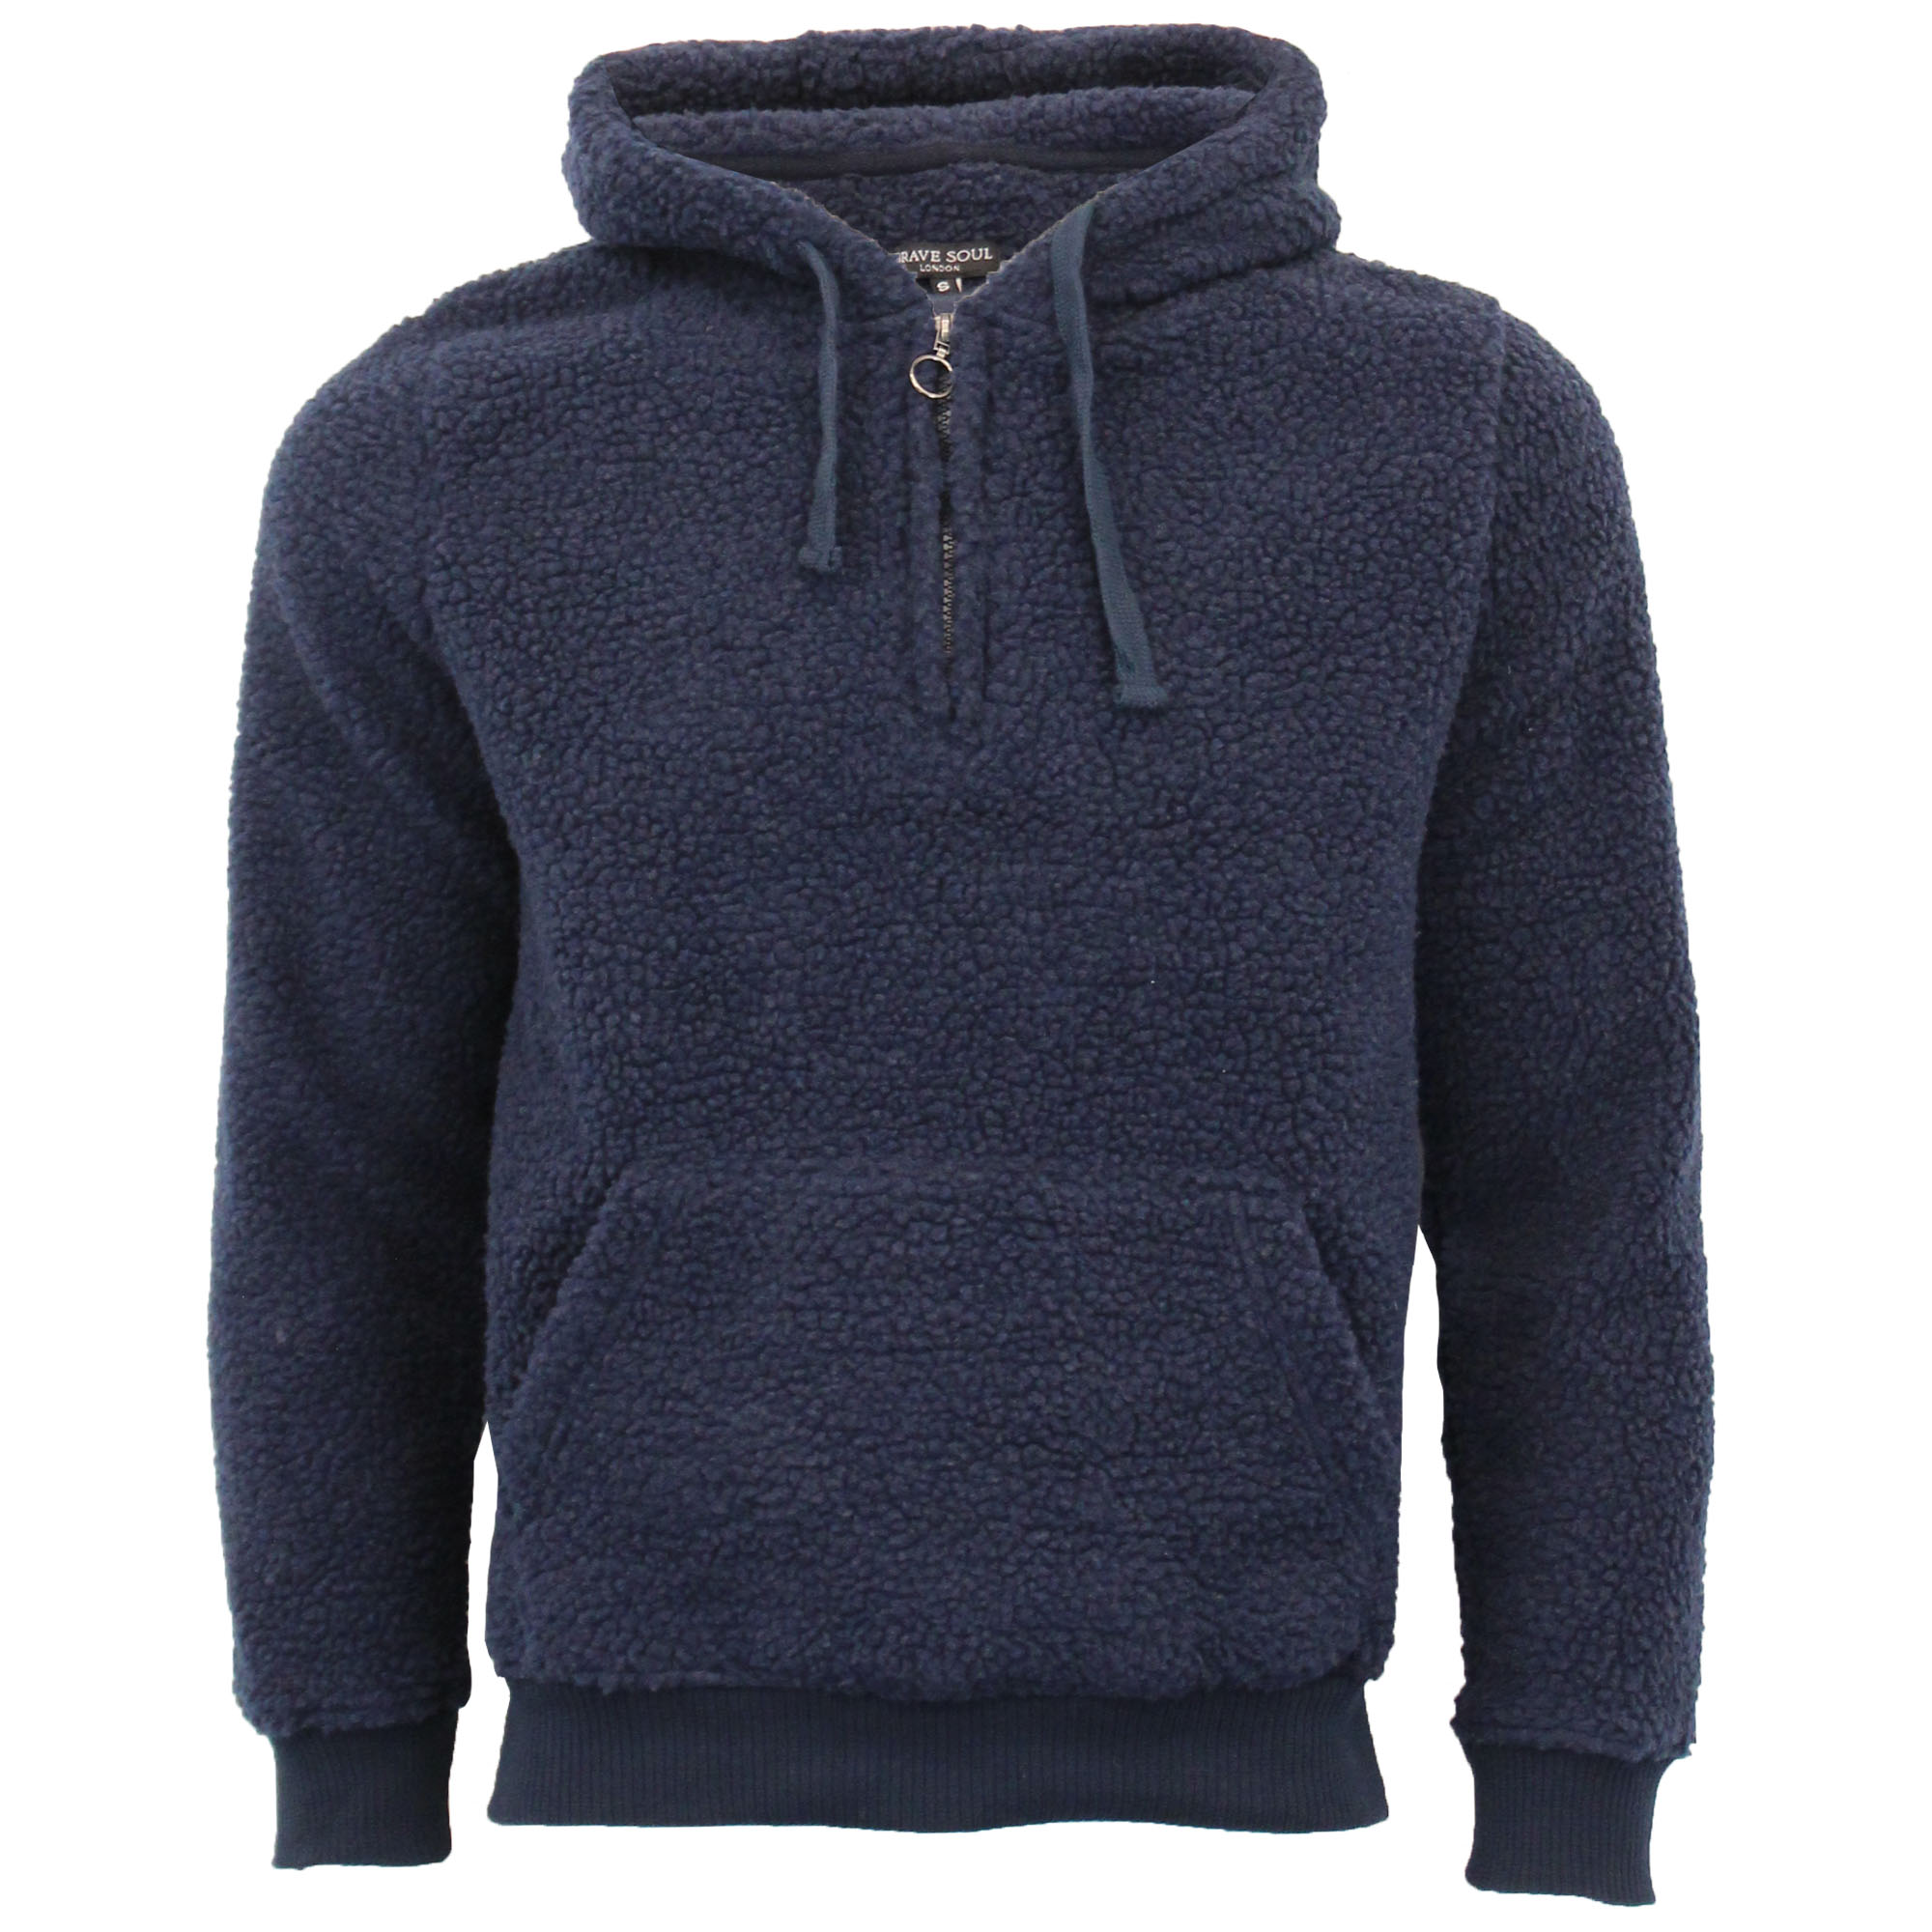 Mens-Borg-Sherpa-Fleece-Sweatshirt-Brave-Soul-DAIM-Over-The-Head-Hooded-Top-Warm thumbnail 9